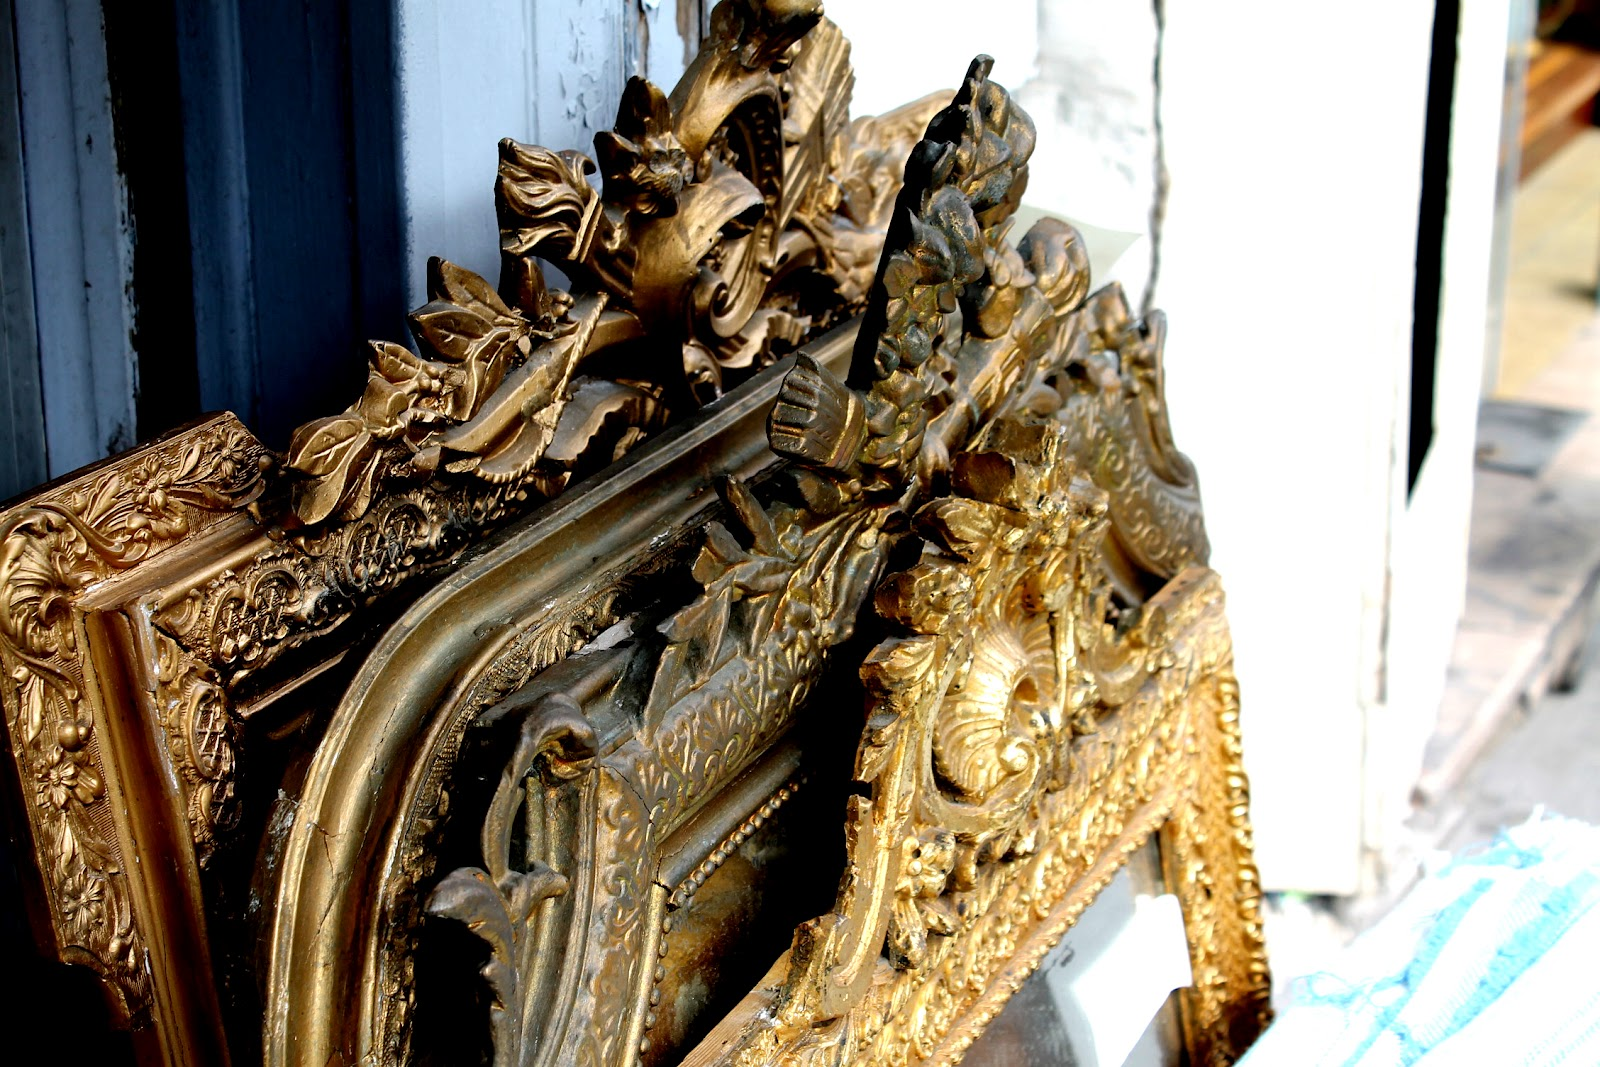 Puce De St Ouen Antique Ghosts Les Puces De Saint Ouen The Luxury